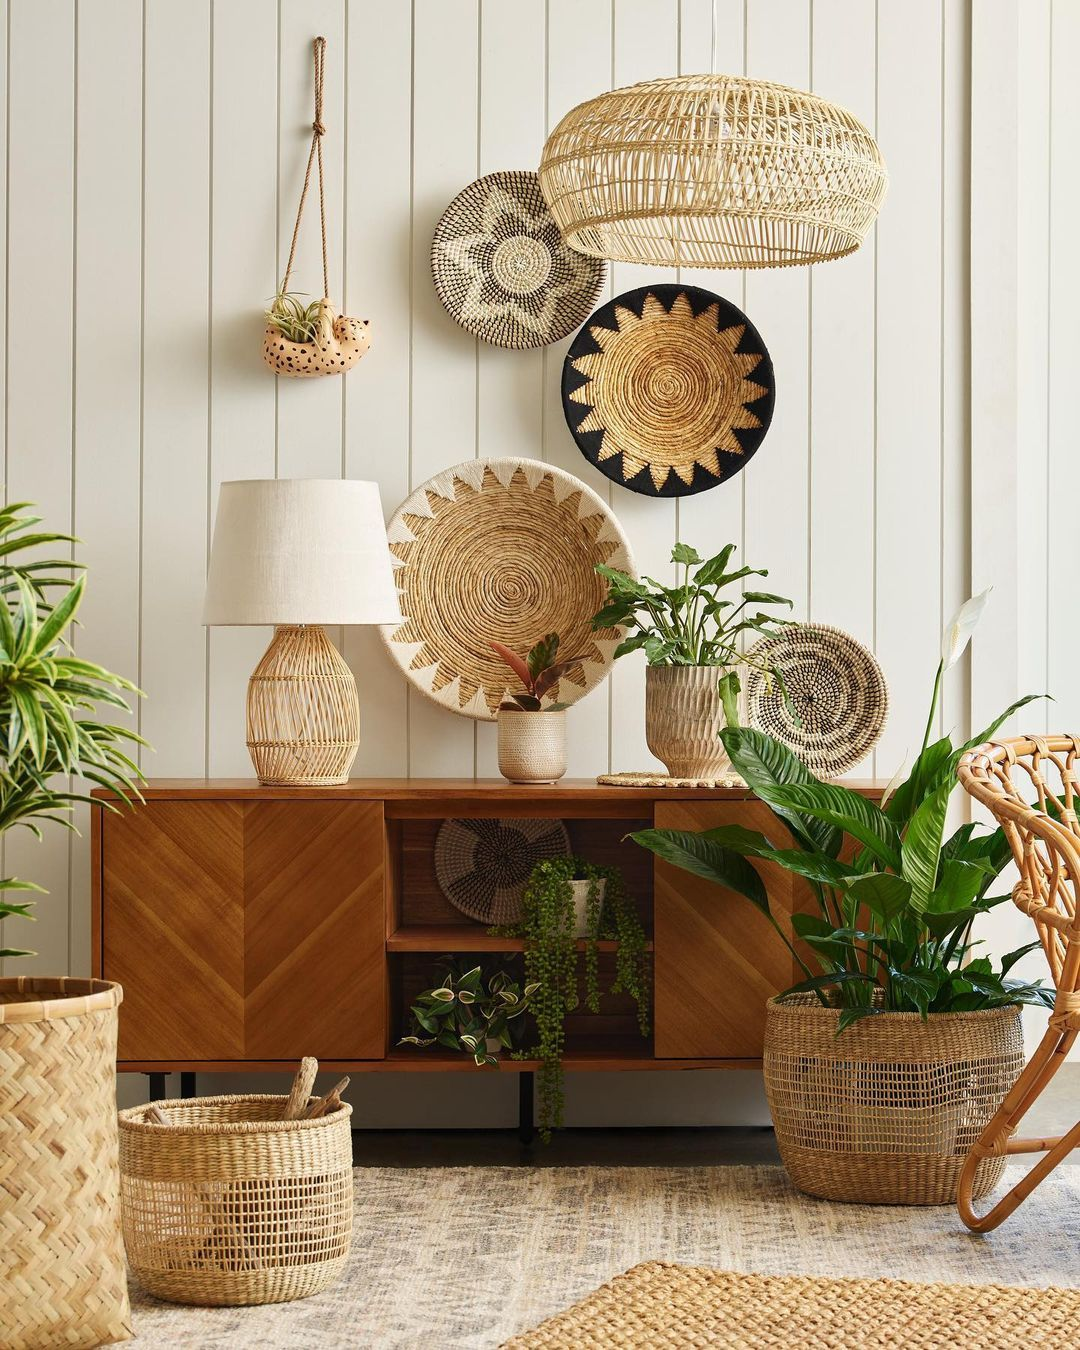 World Market On Instagram Natural Always In Style Add A Bit Of Boho Luxury To Your Home Decor With Rattan Furniture Decor Home Decor Inexpensive Home Decor